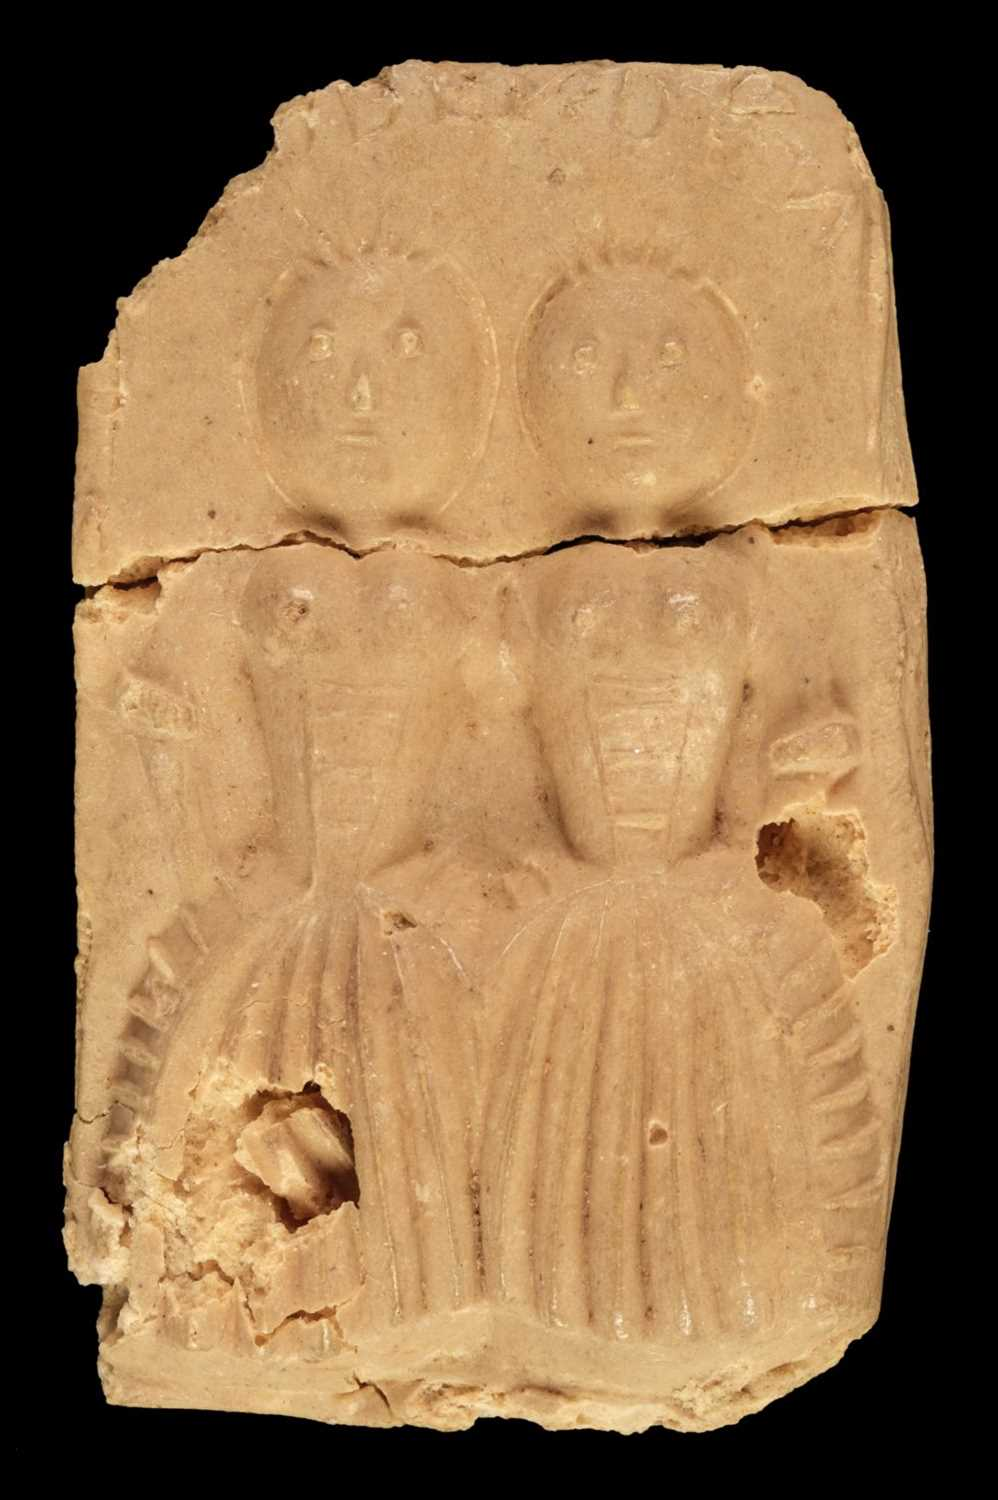 Lot 448 - Biddenden Maids. Commemorative biscuit, late 18th-early 19th century?